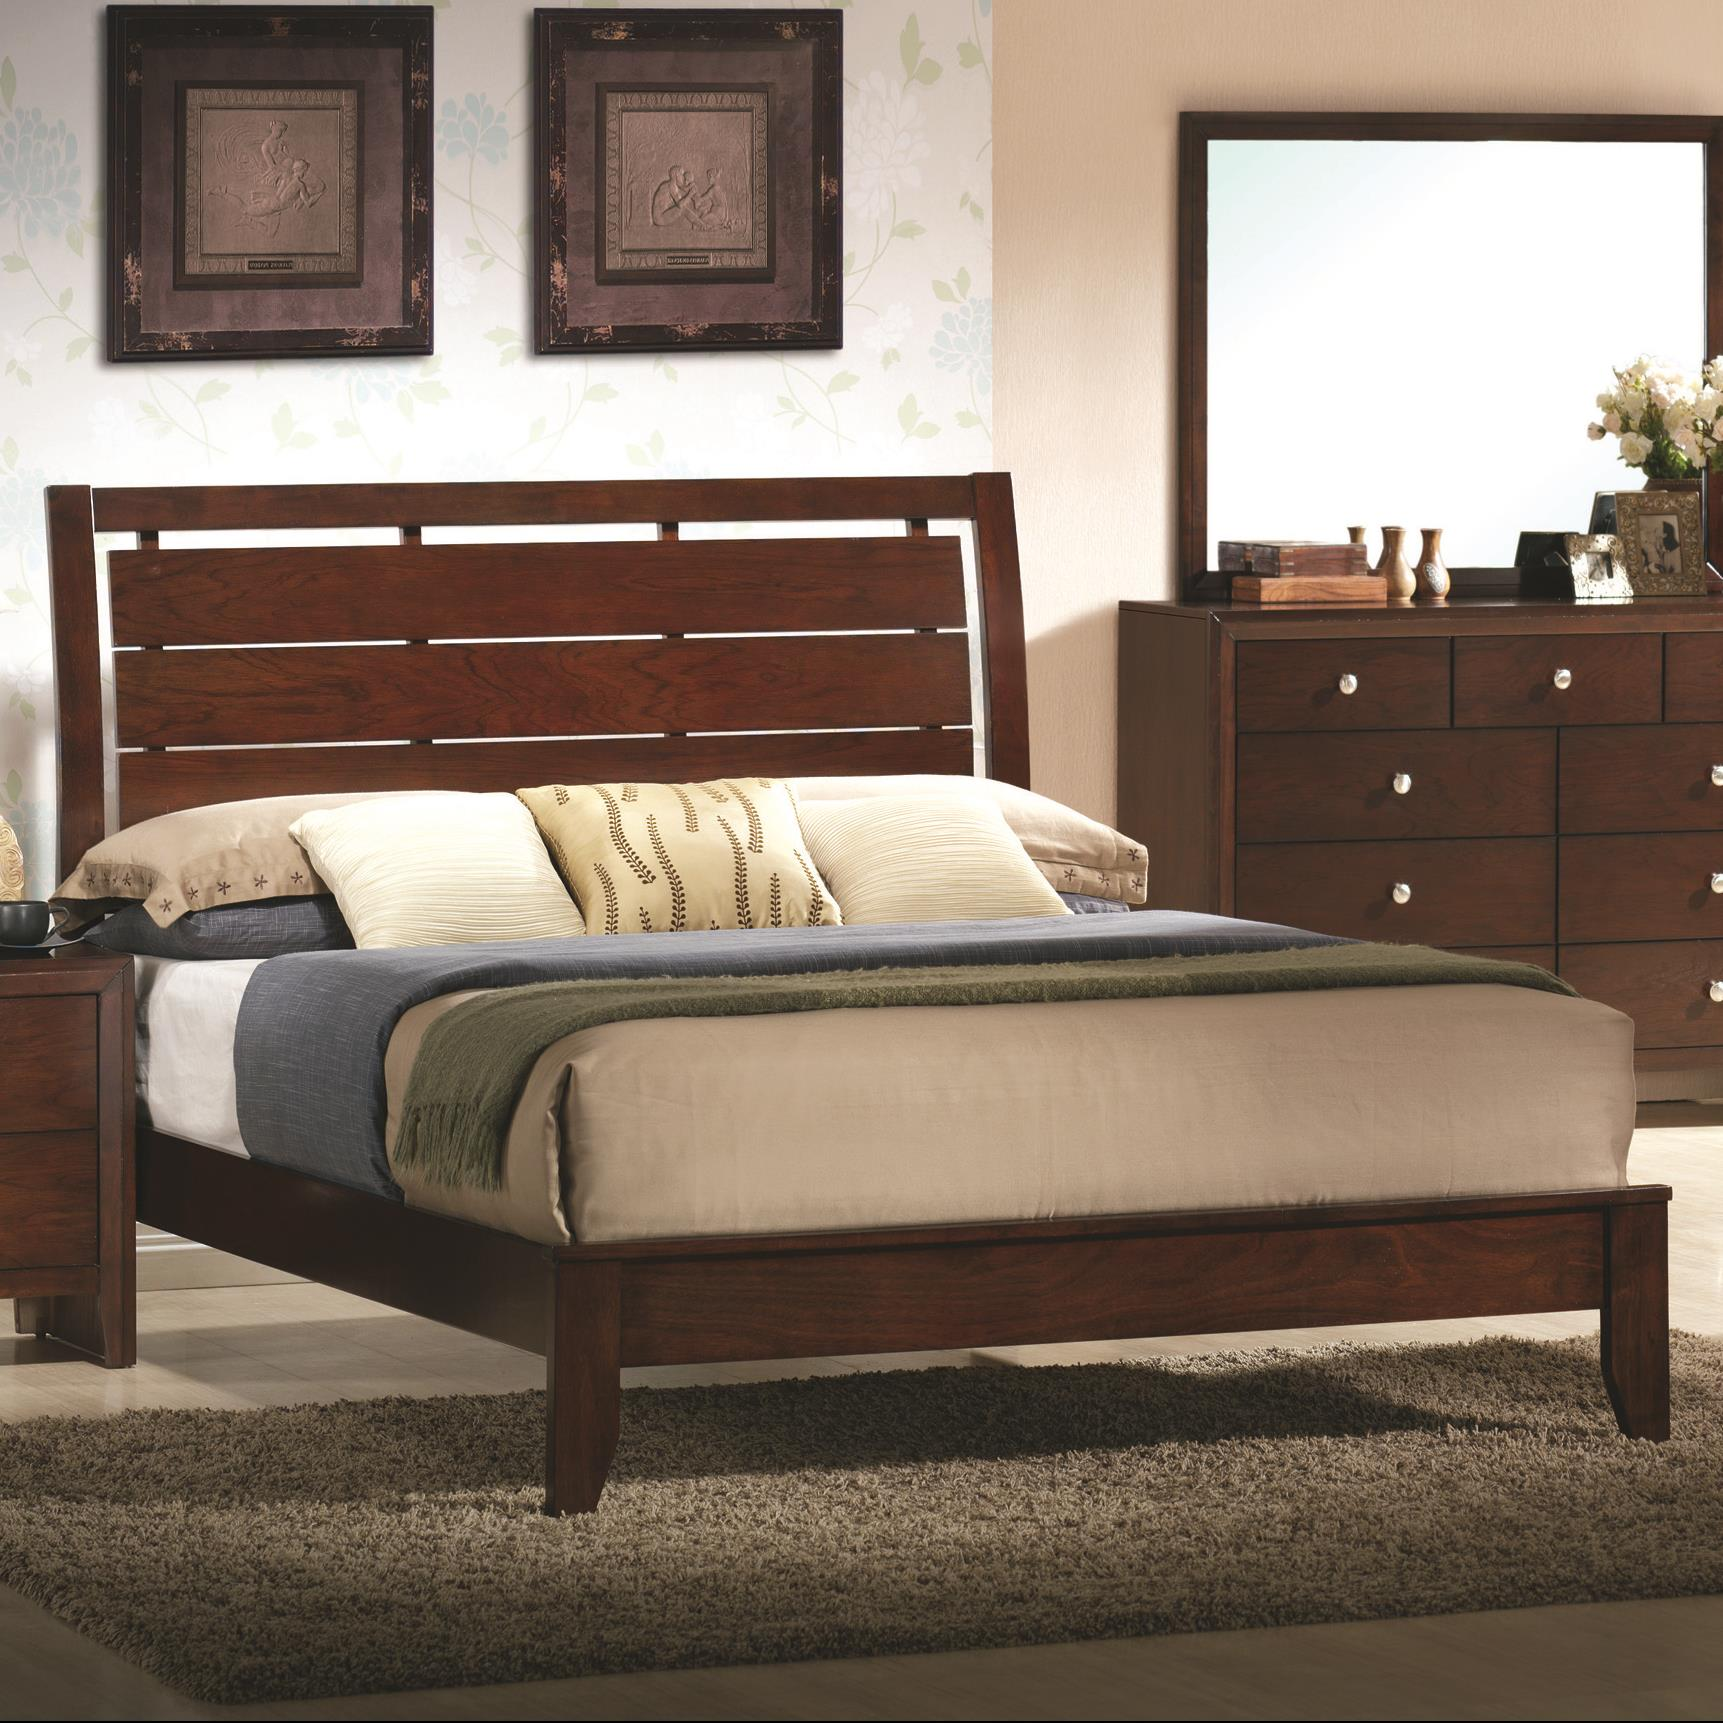 Crown Mark Evan Twin Headboard and Footboard Bed - Item Number: B4700-T-HBFB+RAIL